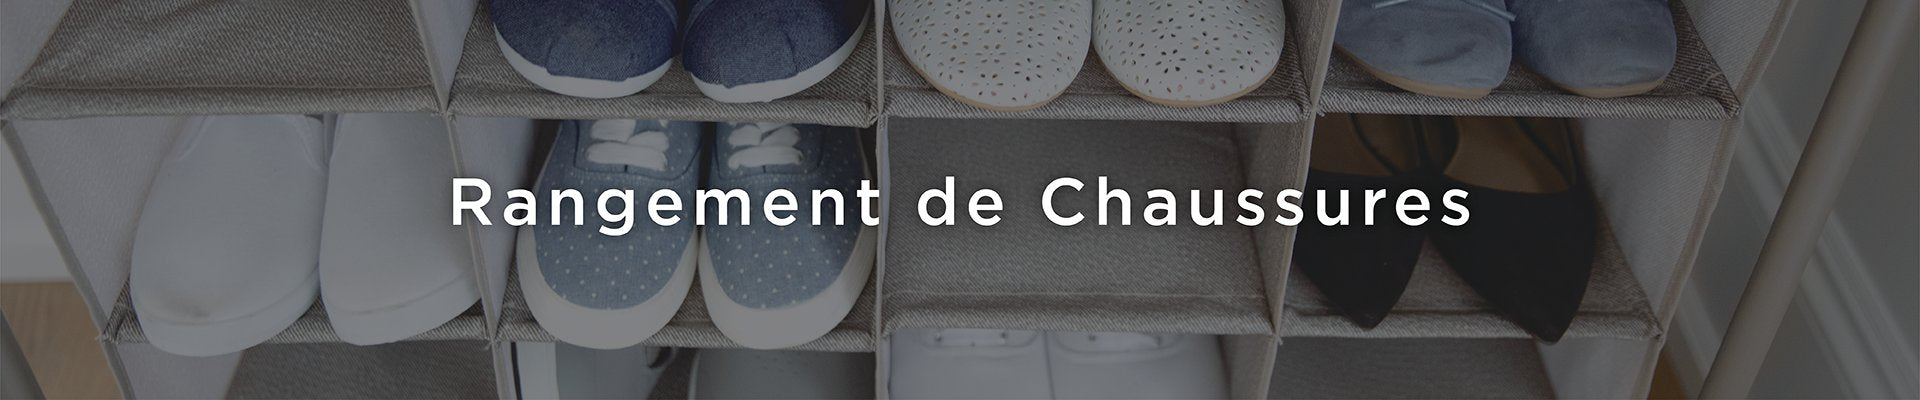 Stockage de chaussures